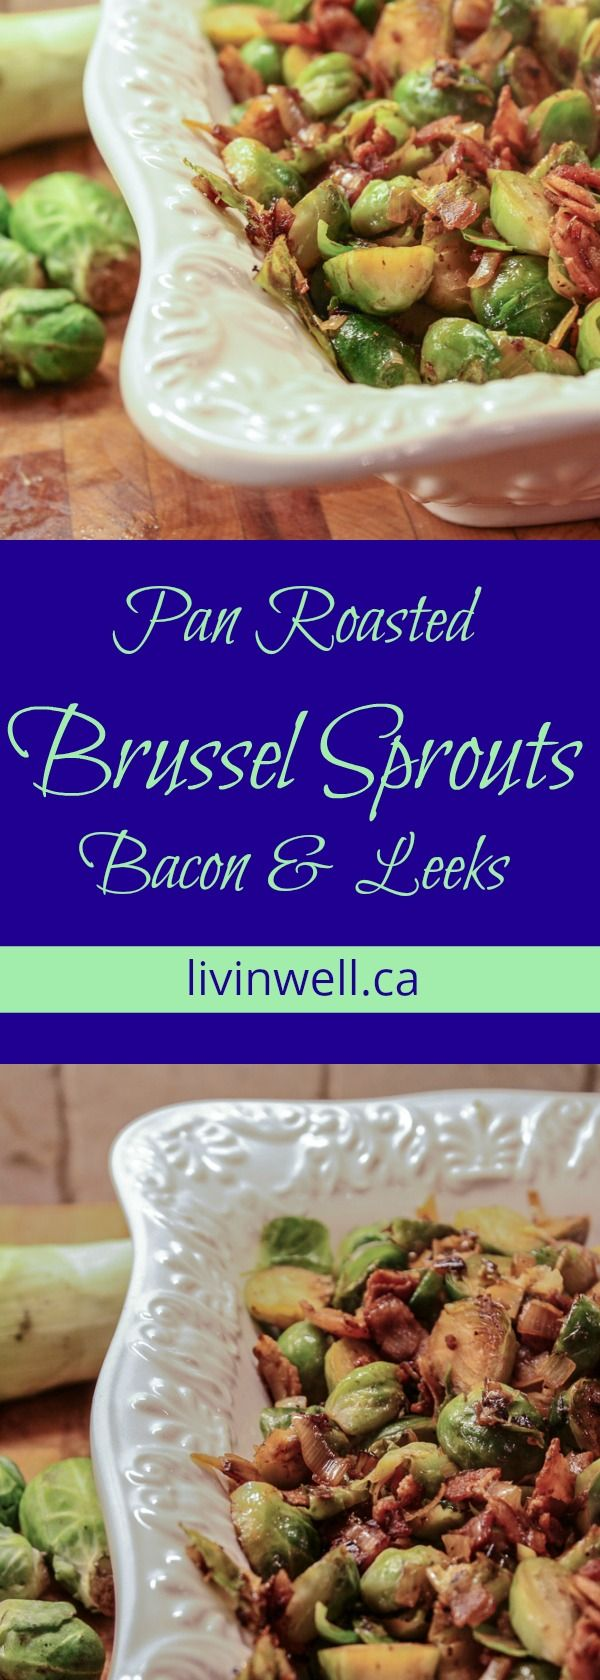 Pan ,Roasted Brussel Sprouts with Bacon & Leeks